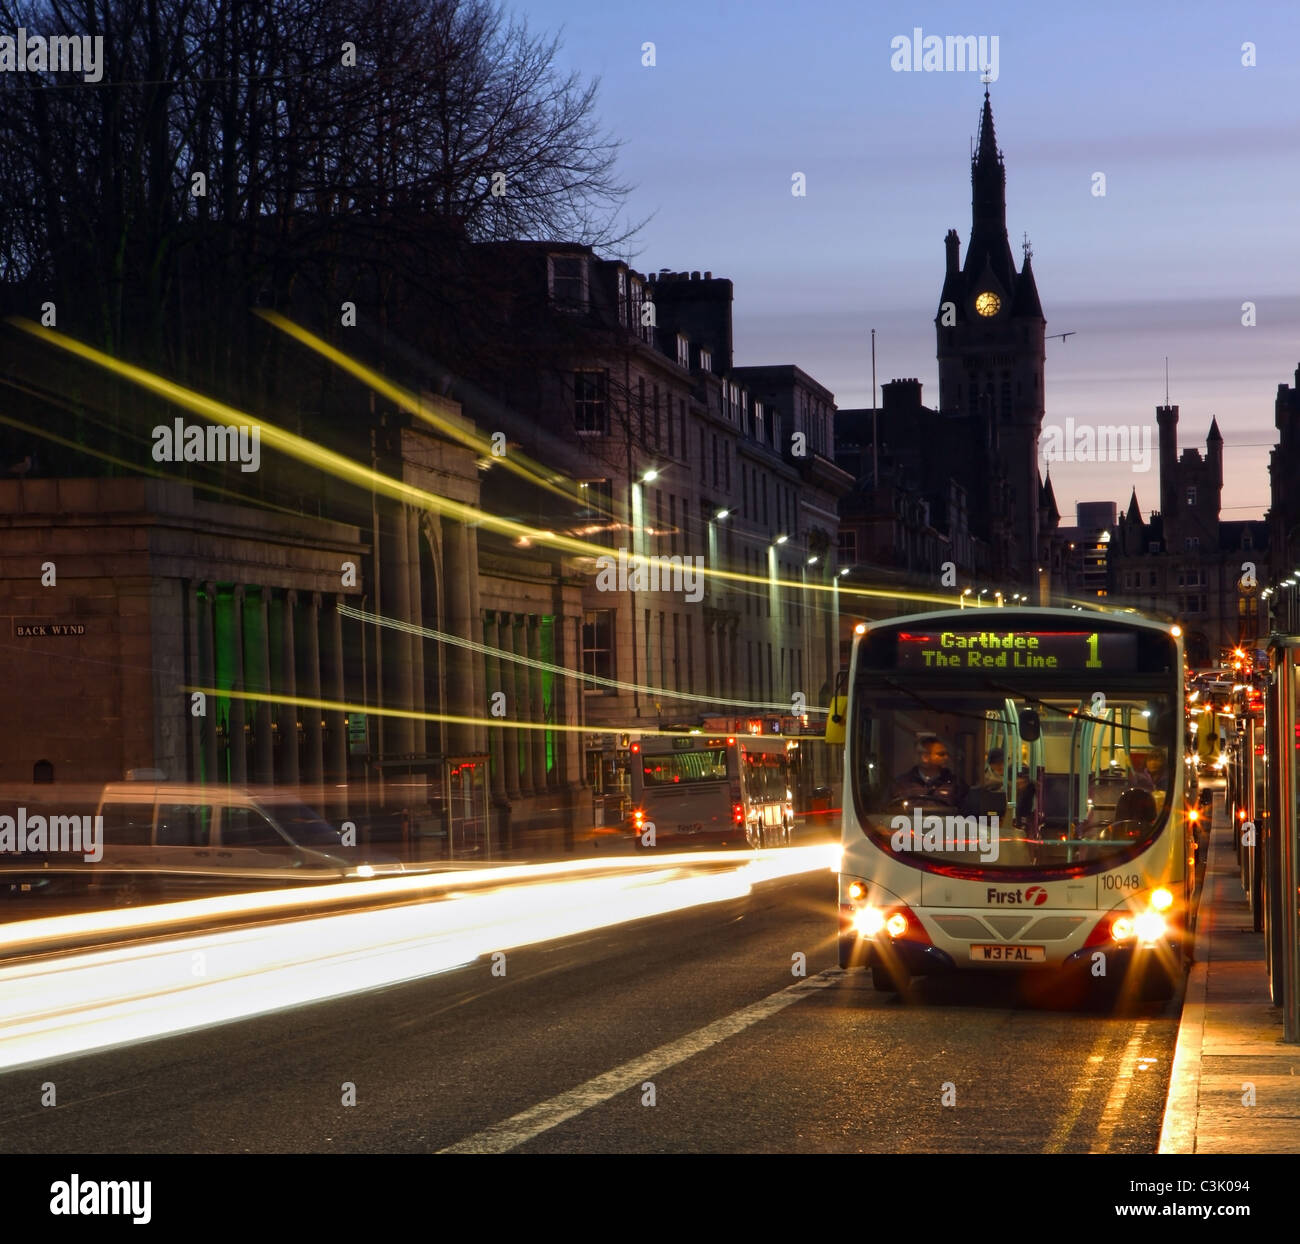 First bus in Union Street in Aberdeen, Scotland, UK at night - Stock Image